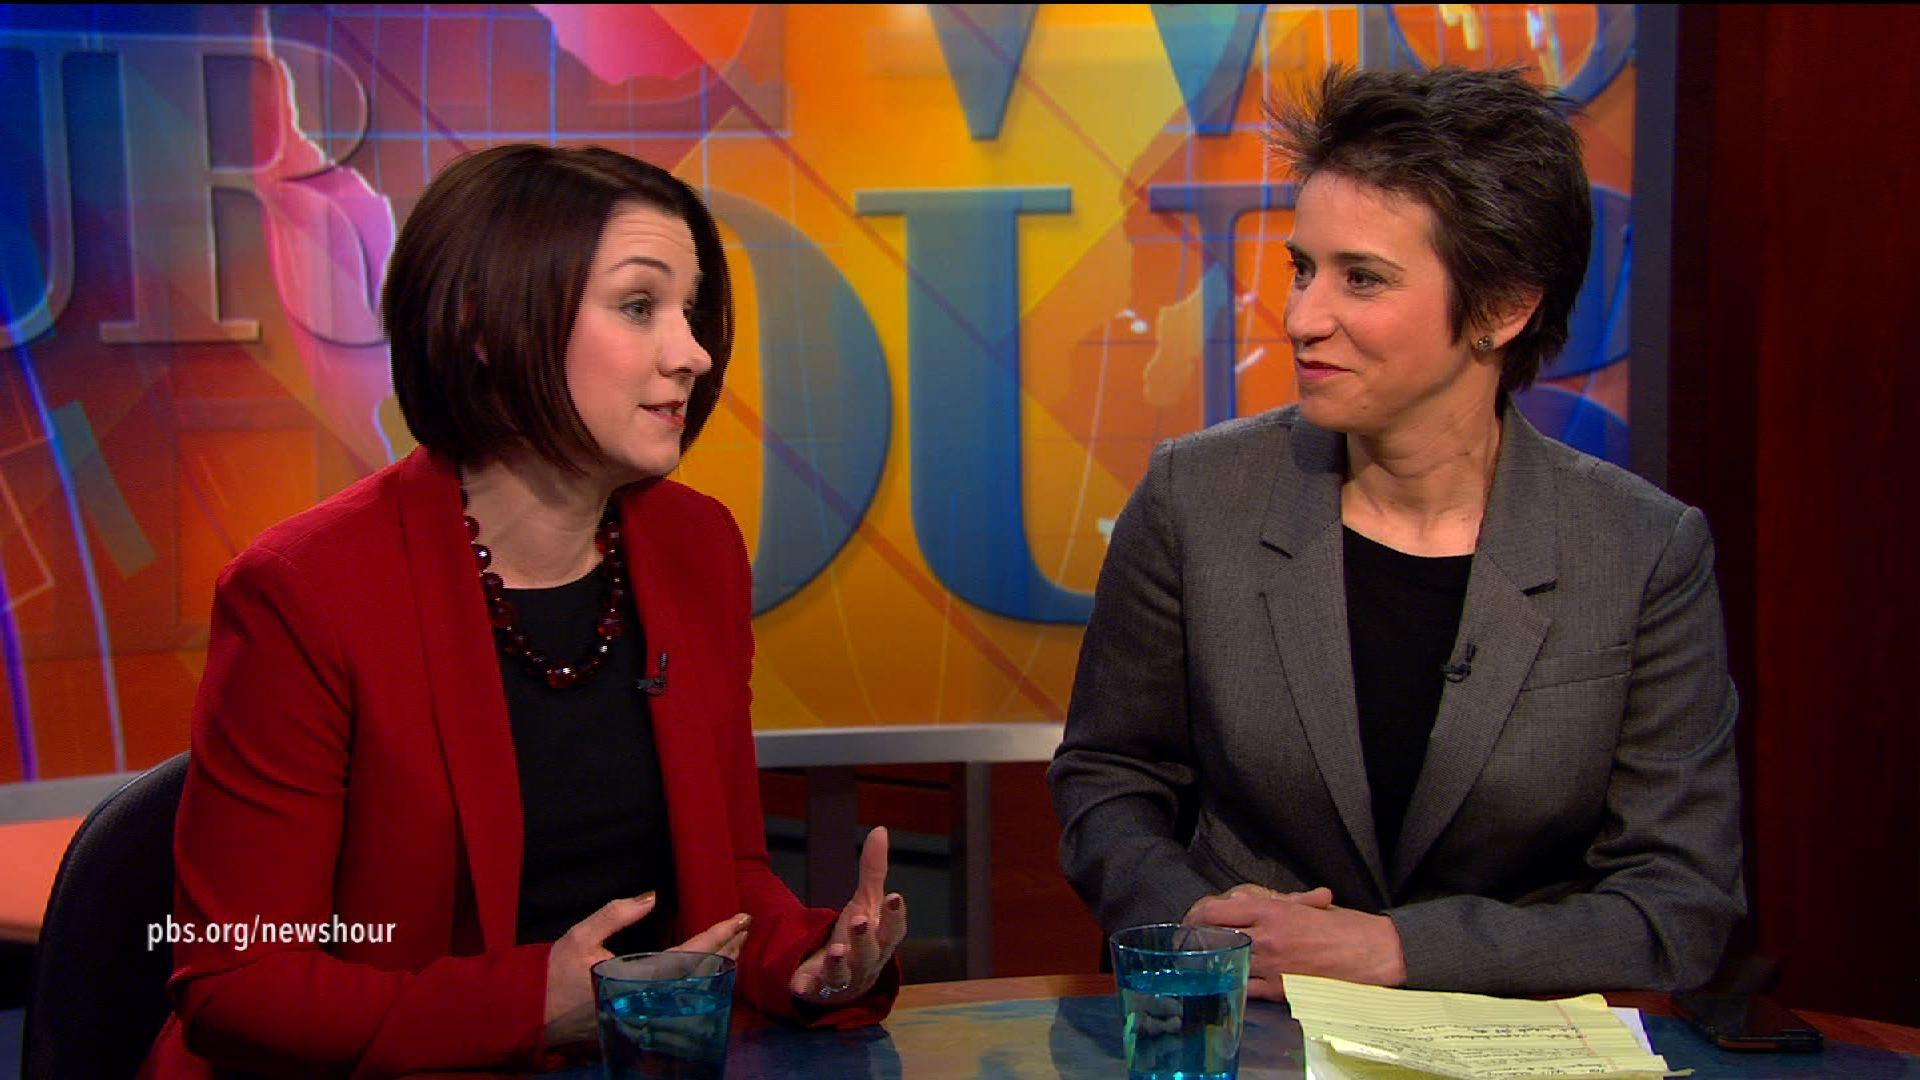 Pbs Newshour Two Families Opposite Views Of The Gay Marriage